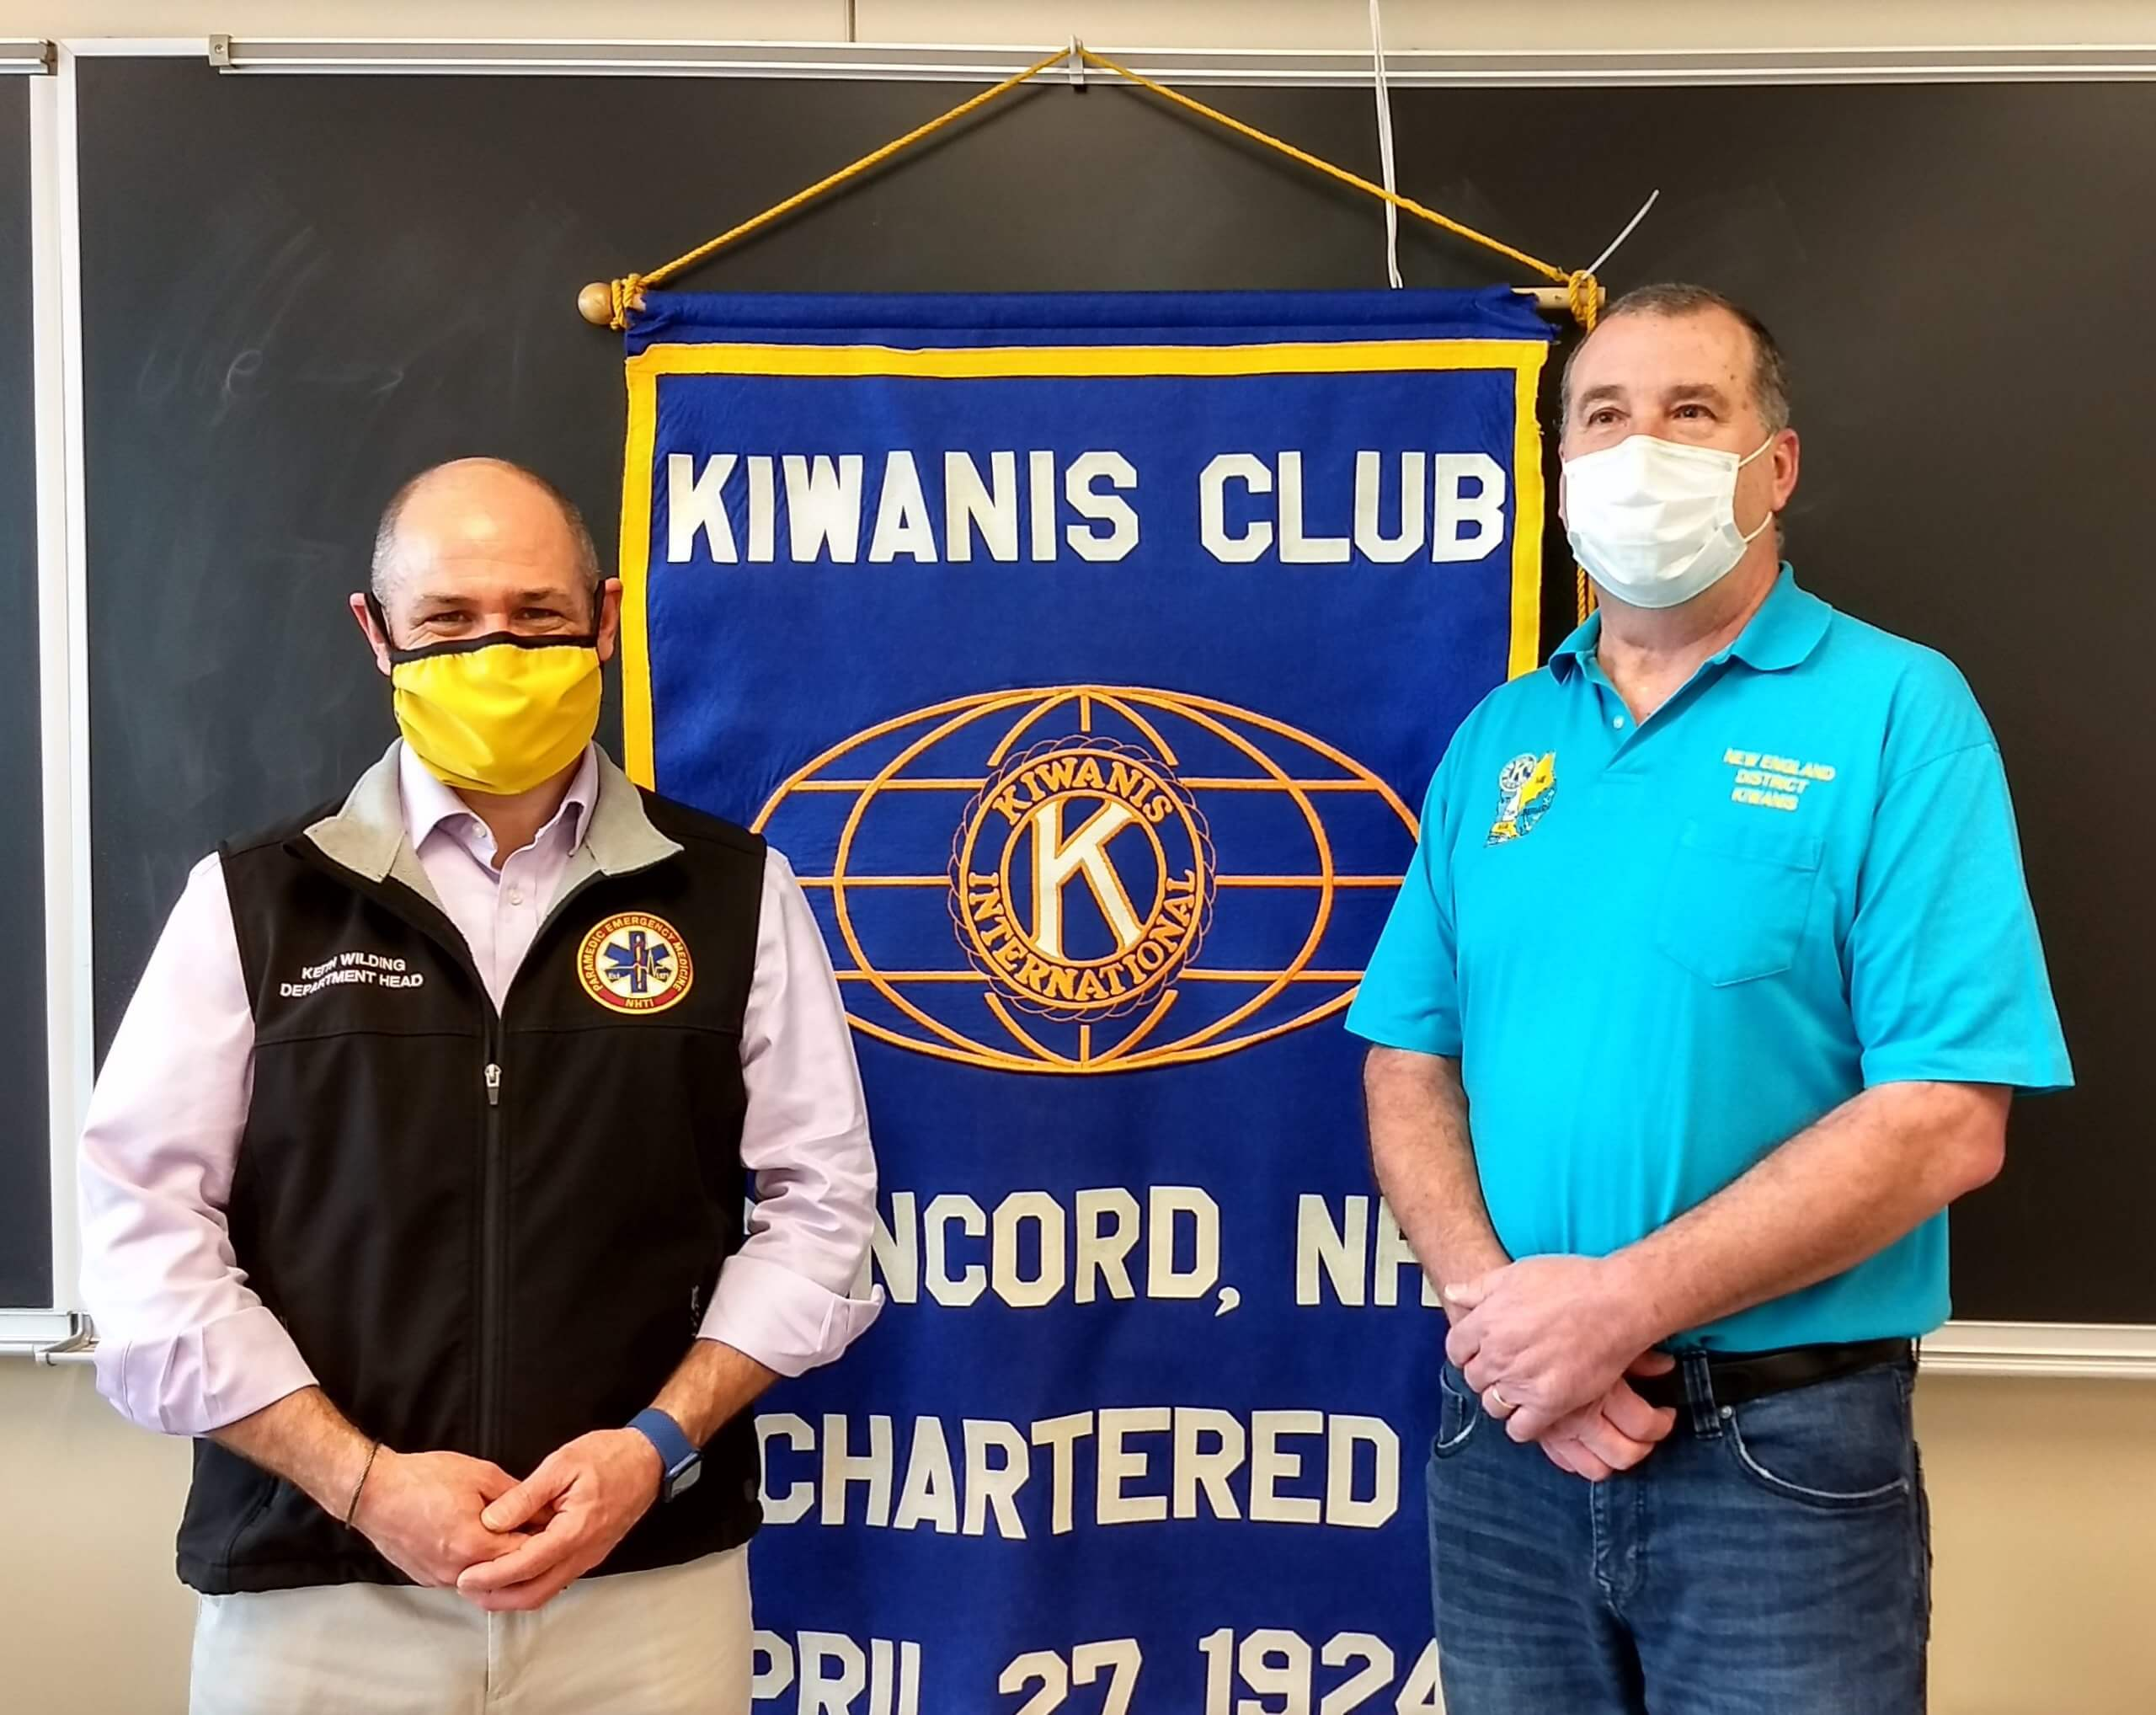 NHTI Receives Gift from Kiwanis Club